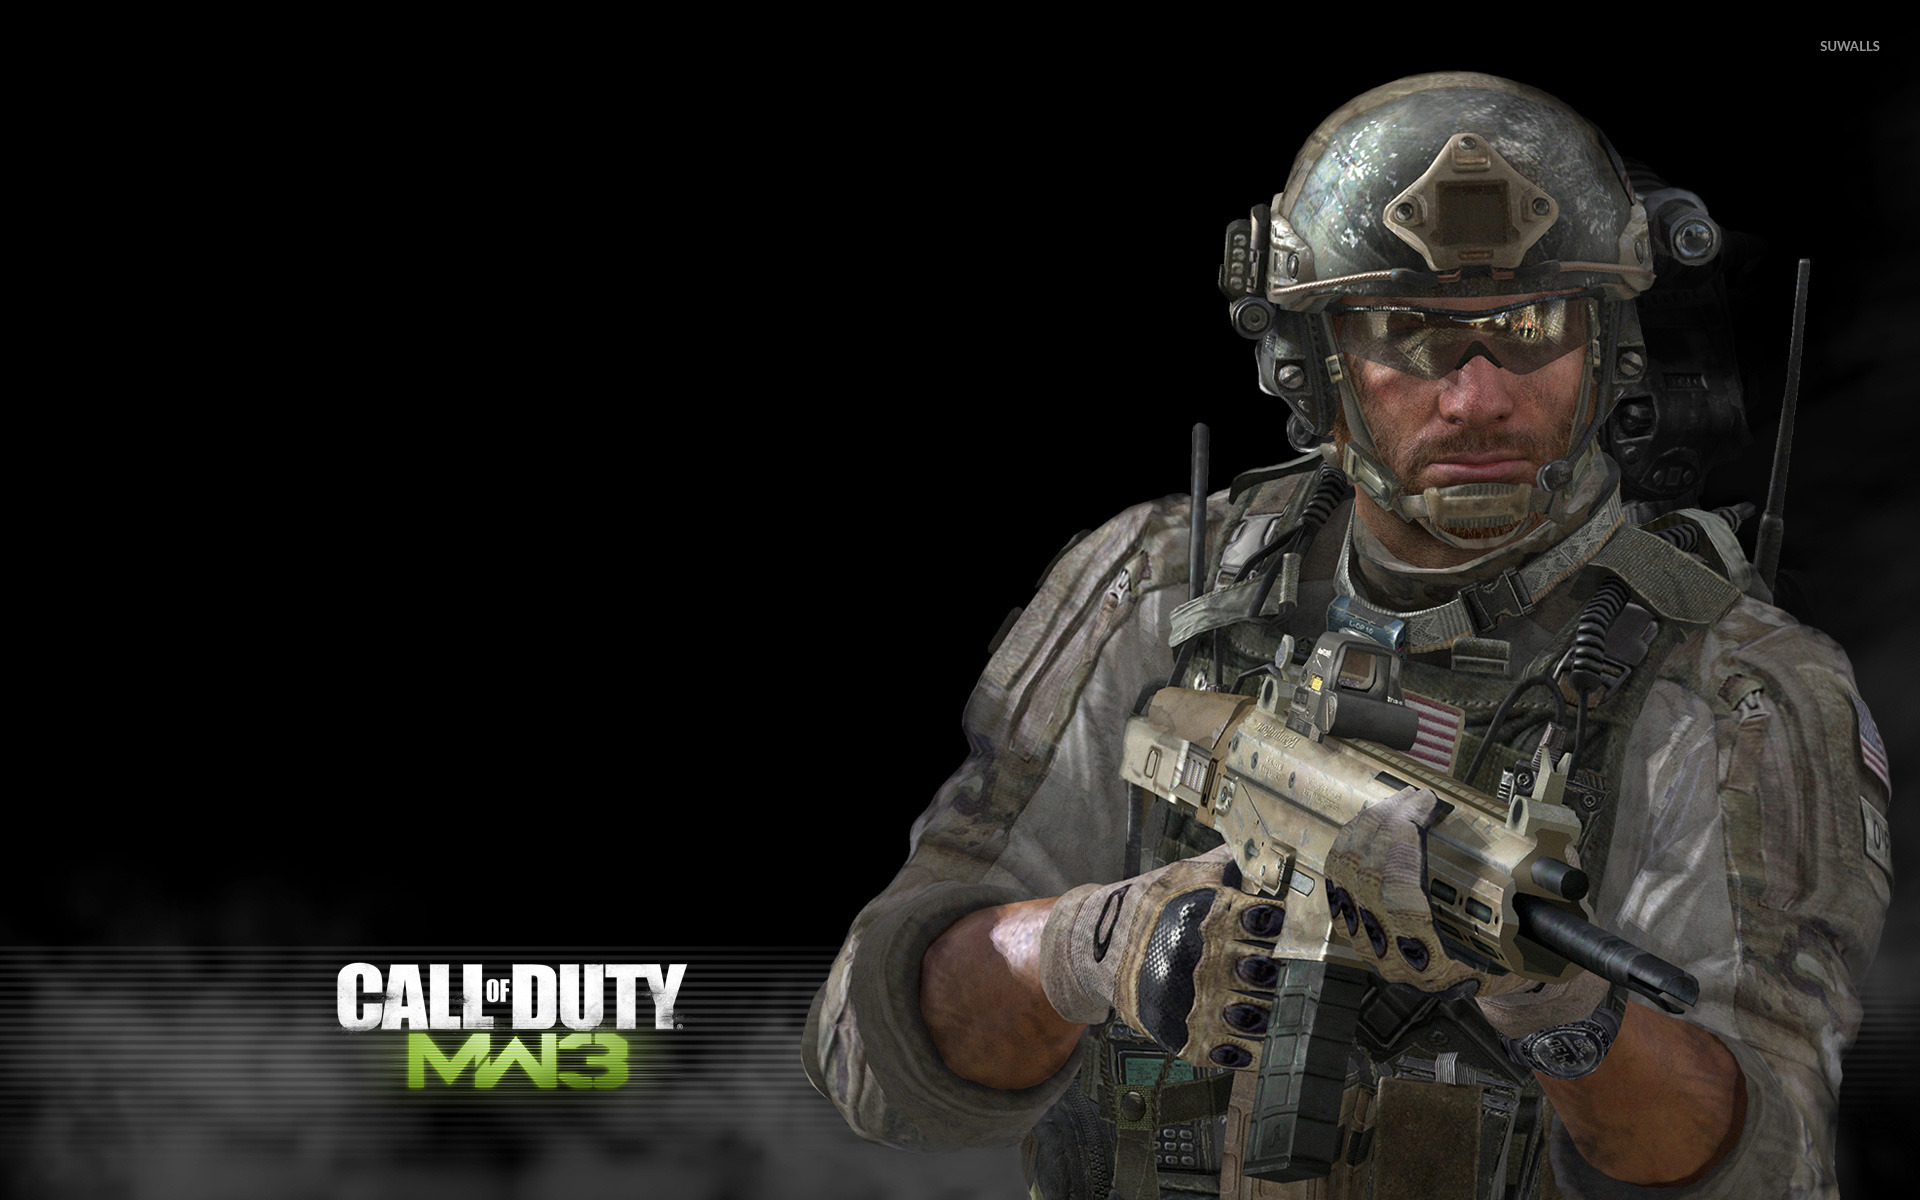 Call of Duty: Modern Warfare 3 [7] wallpaper - Game